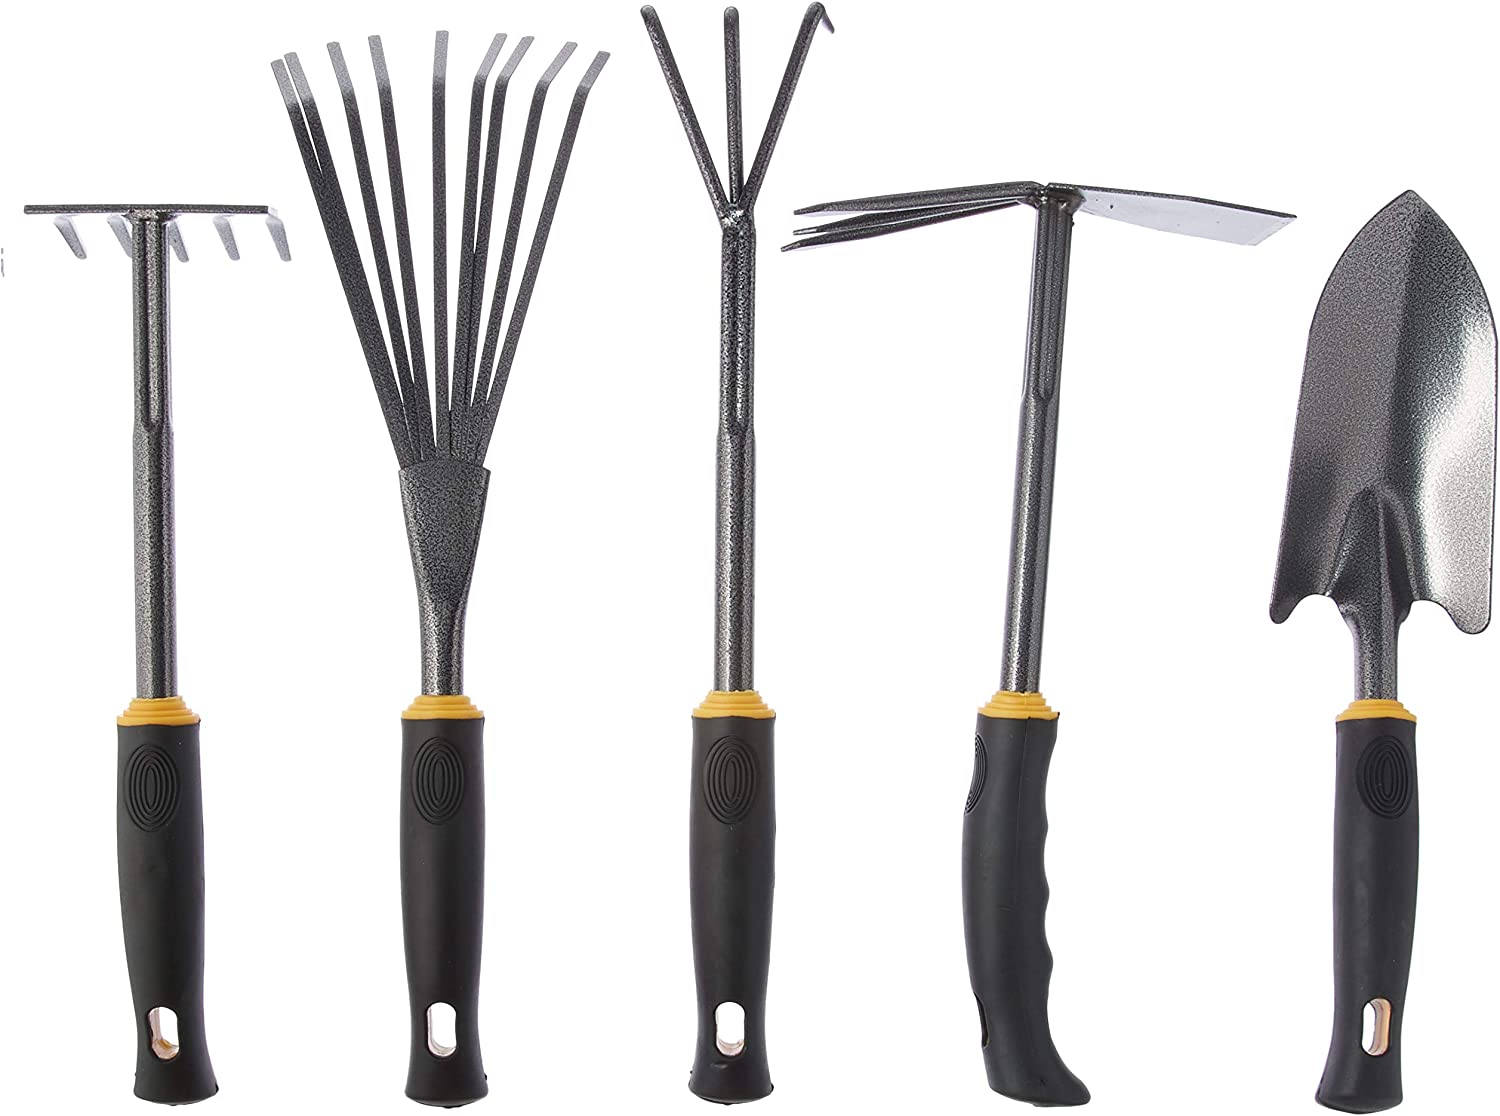 Centurion 485 Durable 5 Piece Garden Tool Set, Yellow